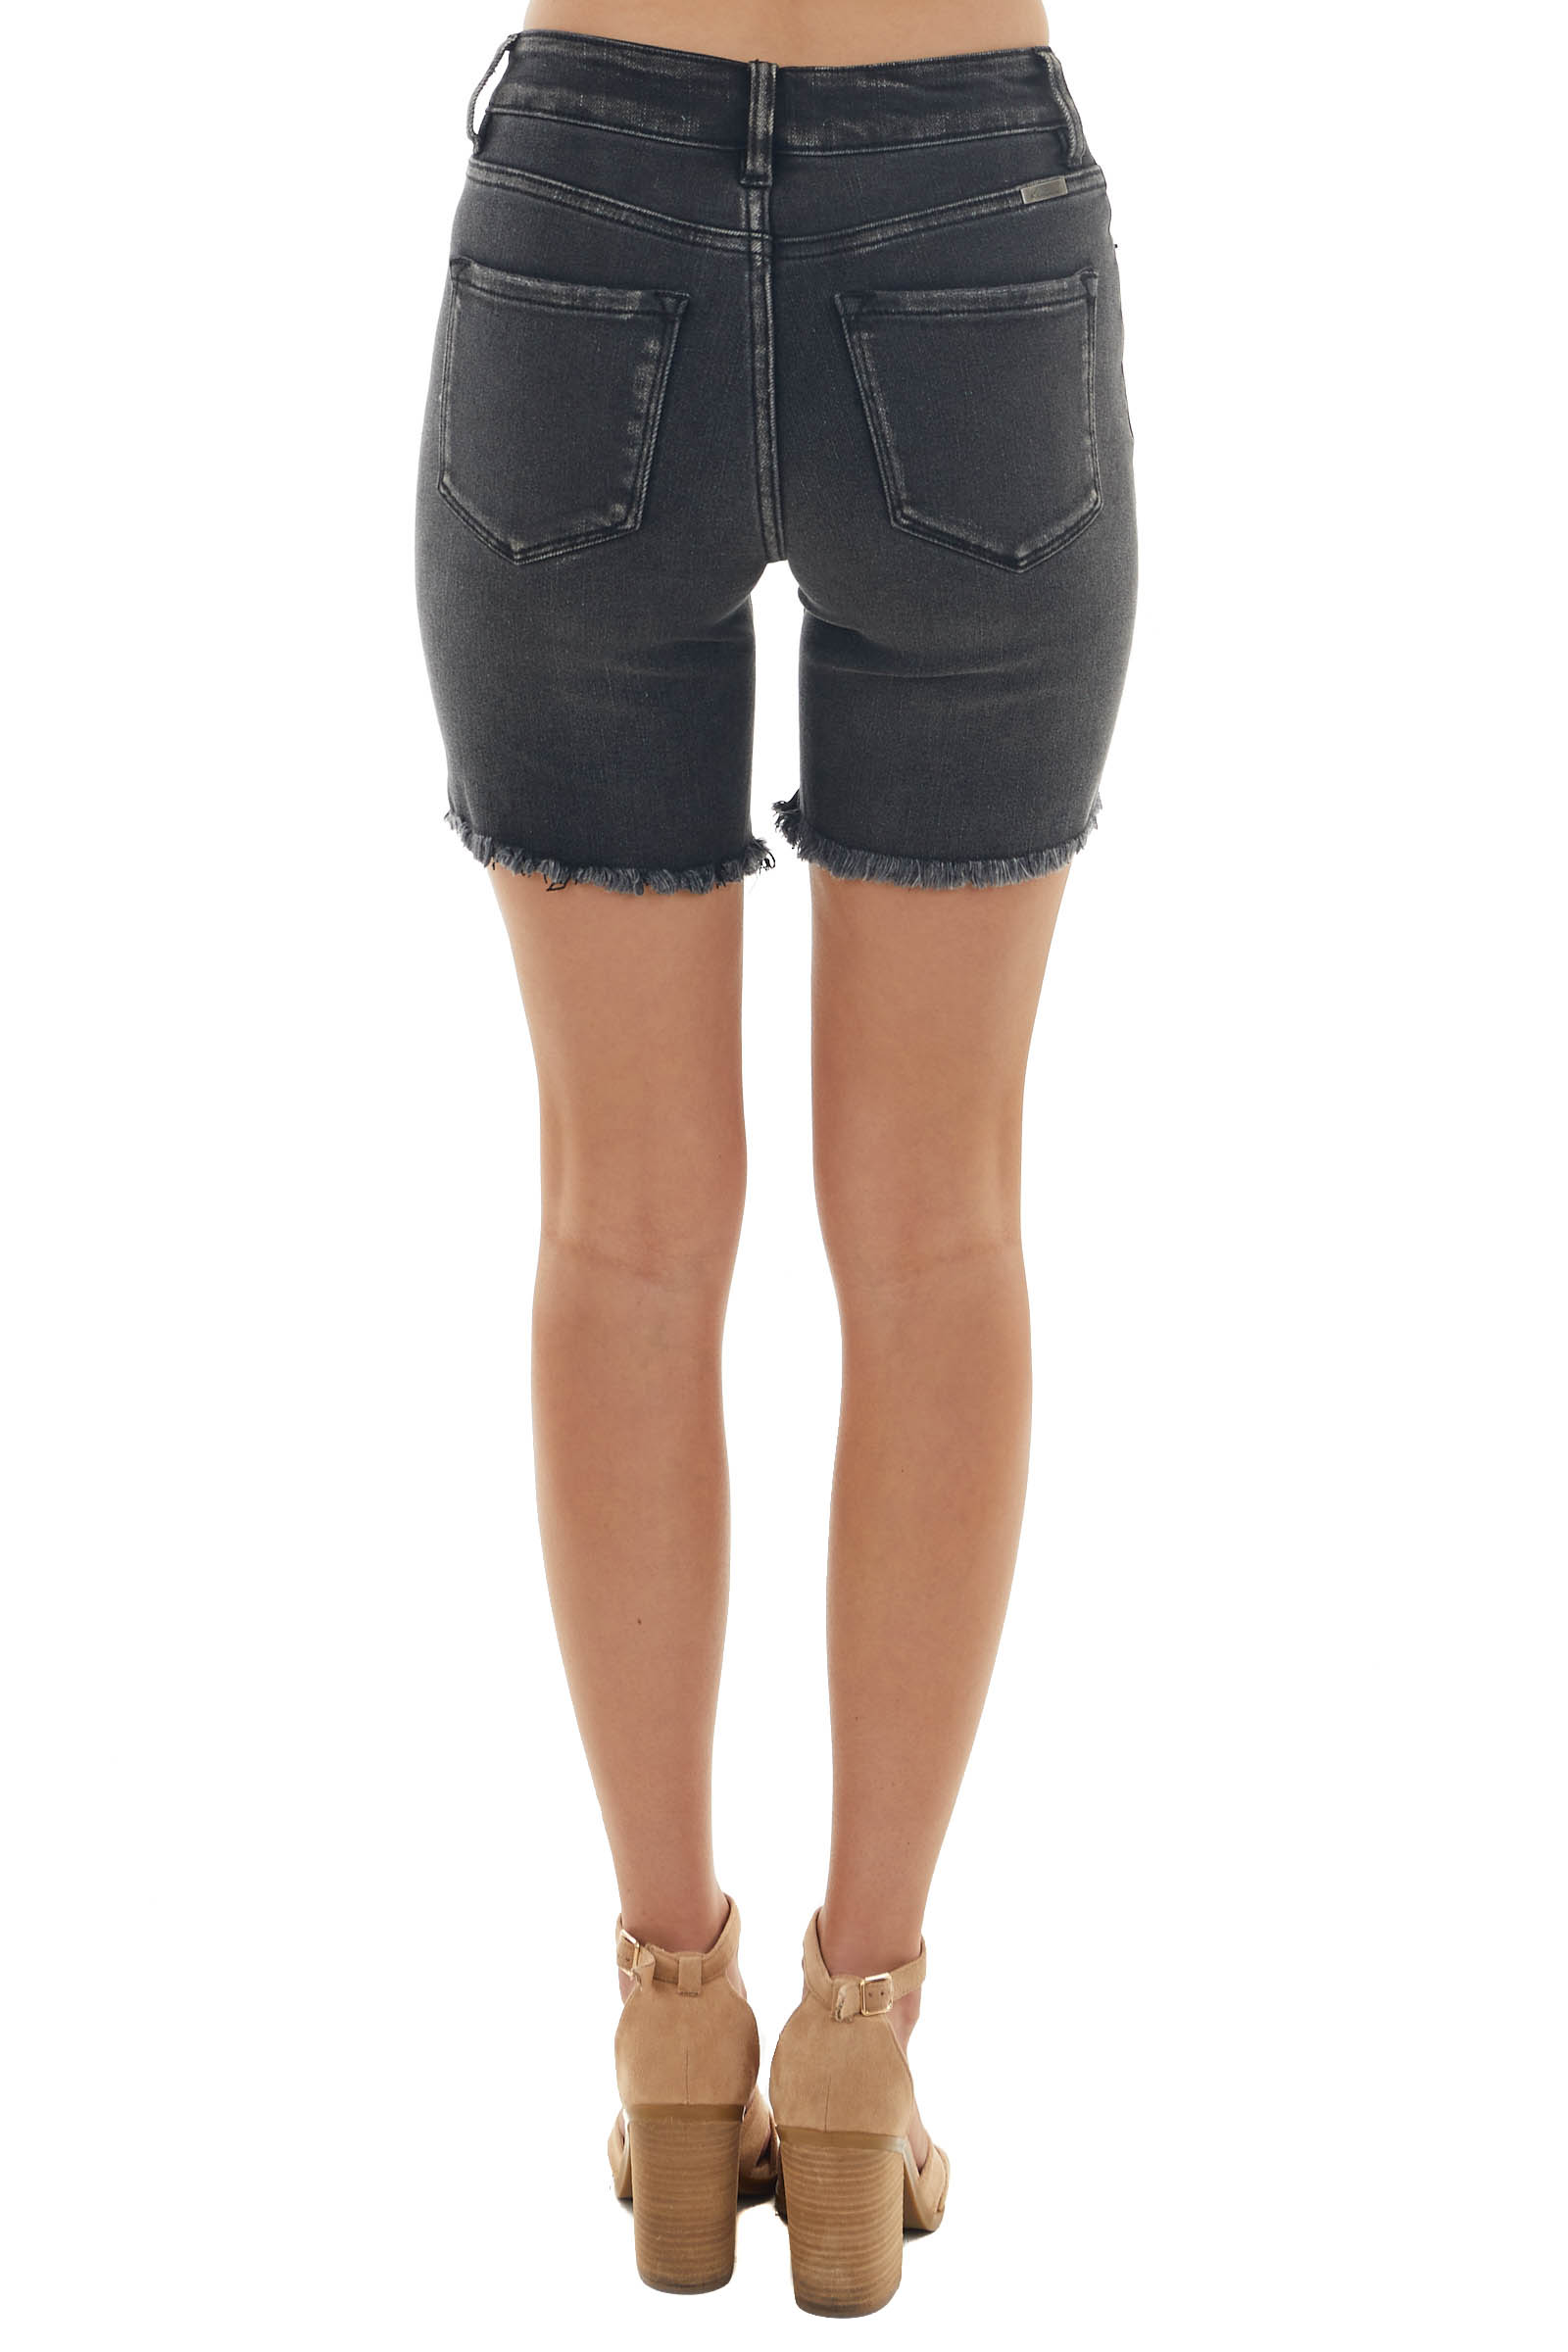 Heathered Black Distressed Stretchy Shorts